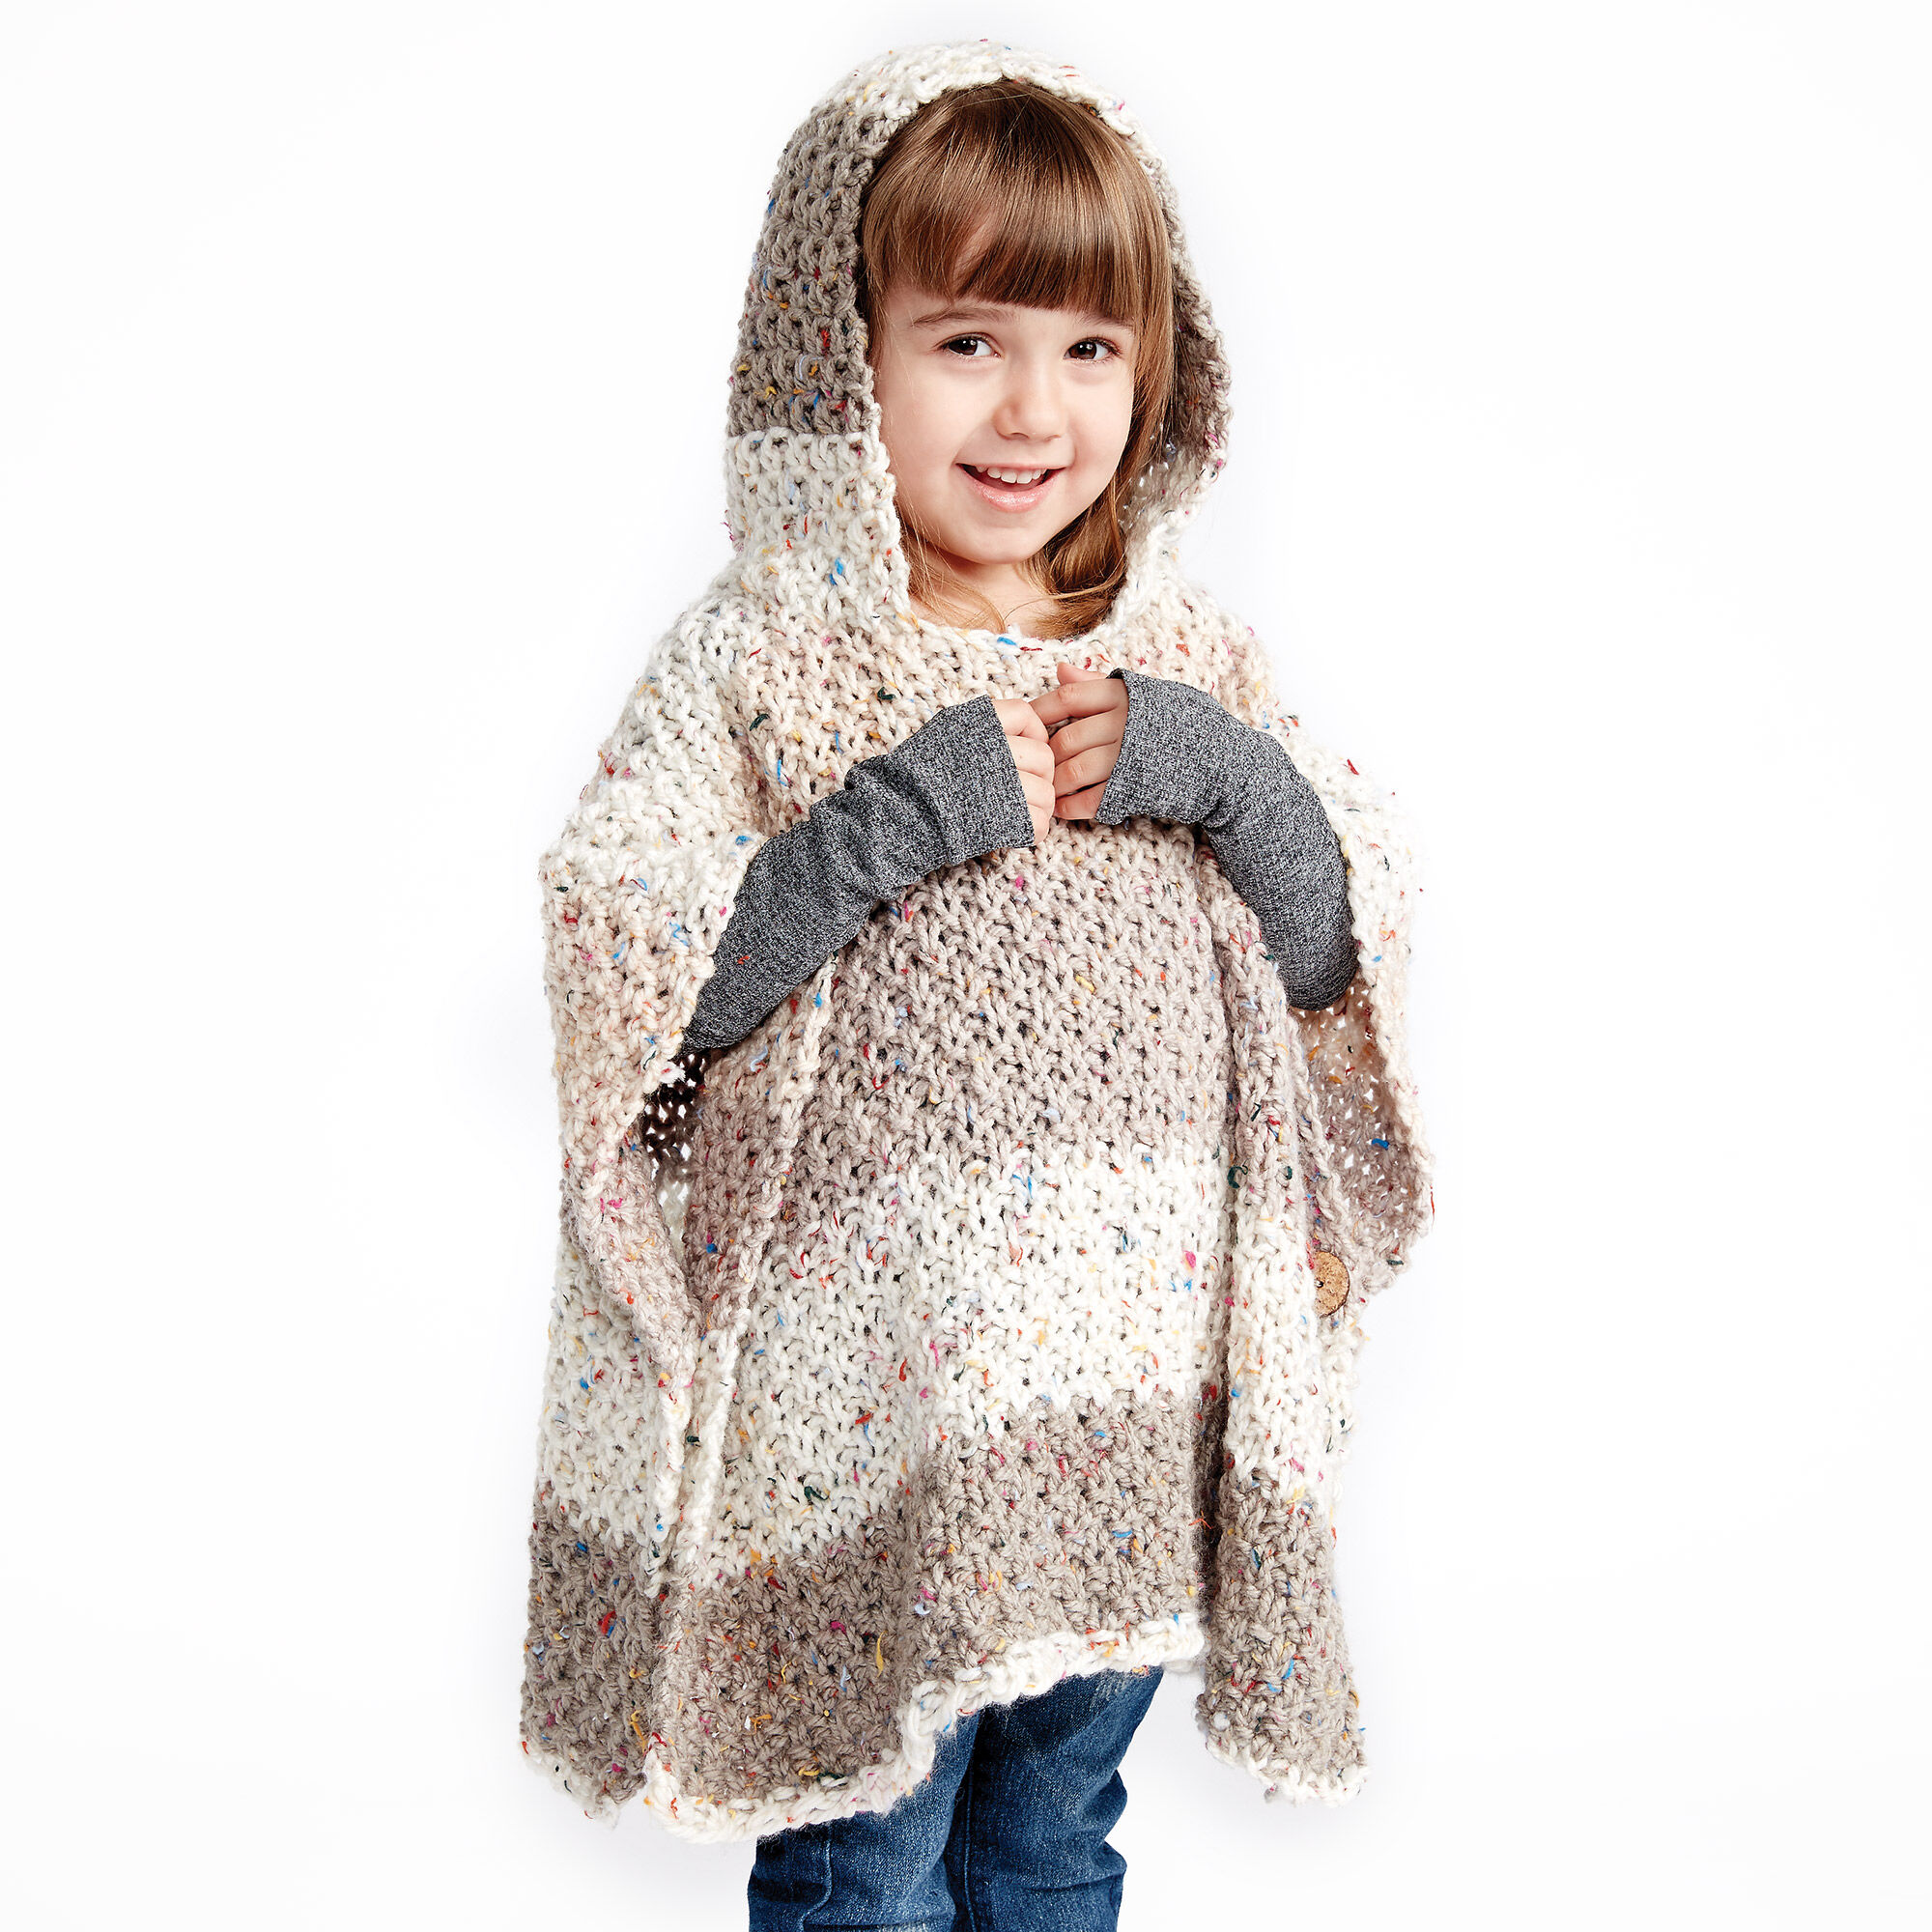 Hooded Poncho Pattern Best Design Inspiration